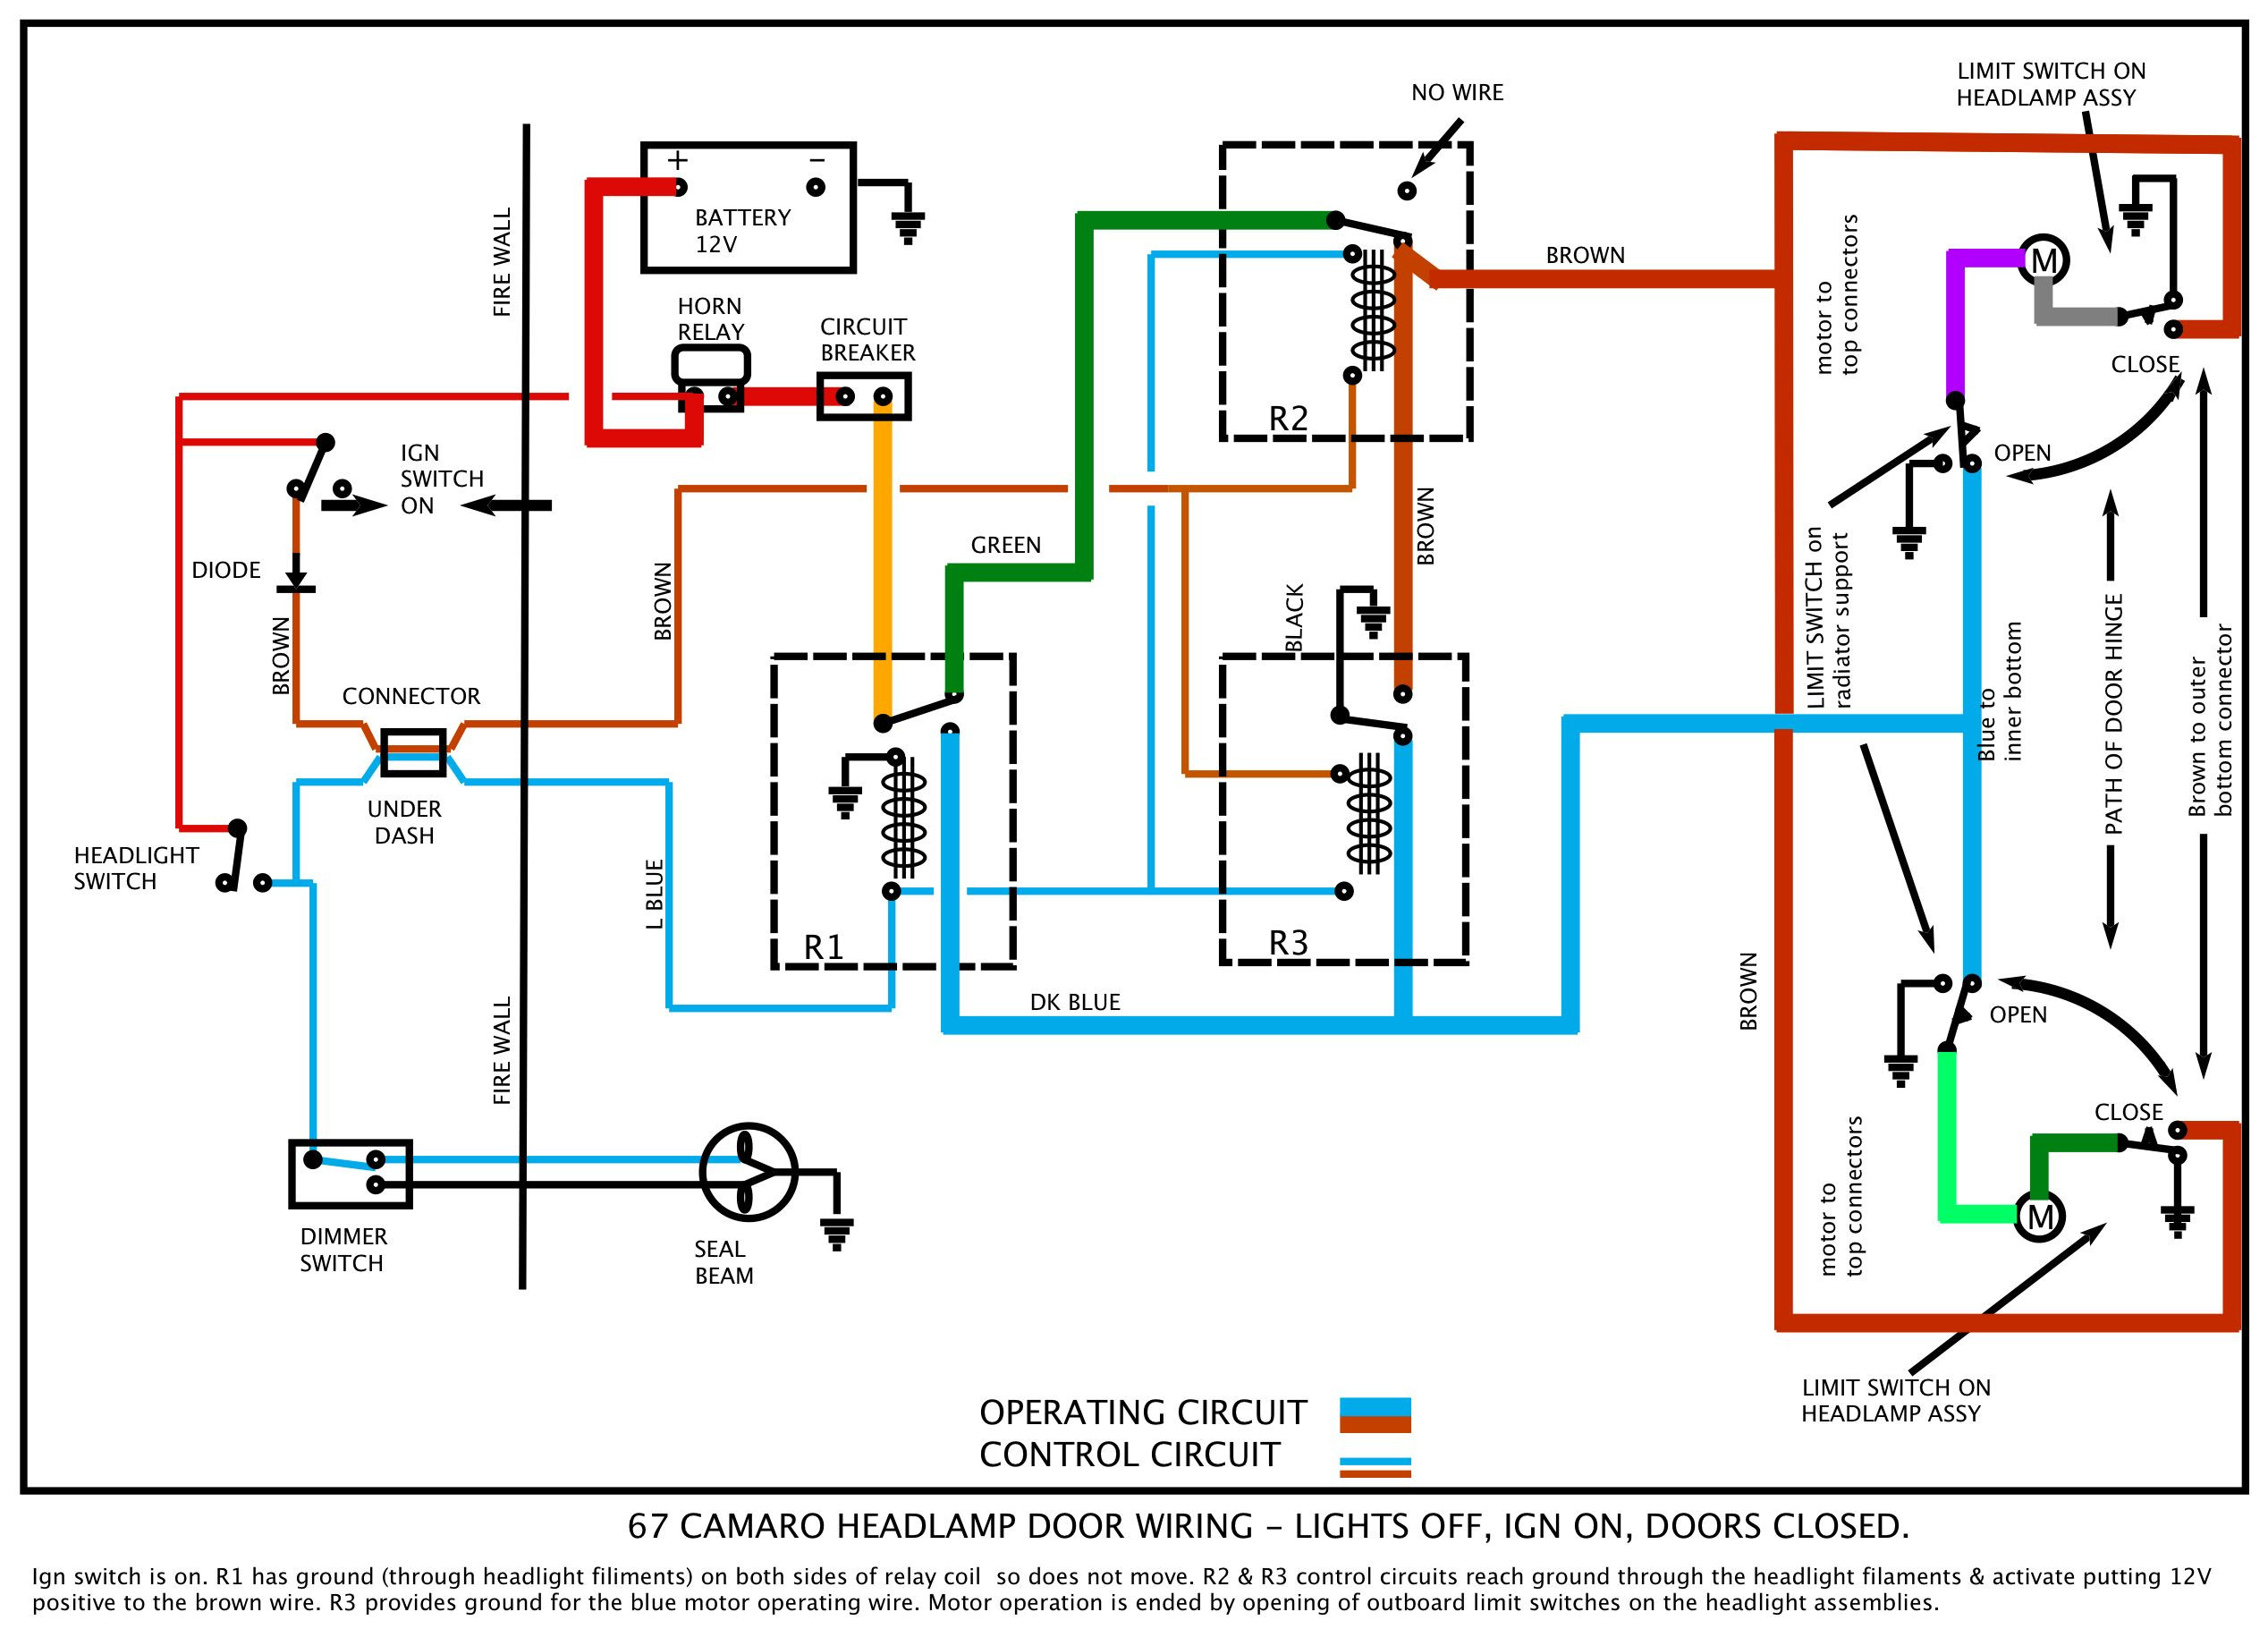 68 Chevy Camaro Ignition Switch Wiring Diagram Ruud Package Unit Heat Pump Wire Diagrams Fords8n Yenpancane Jeanjaures37 Fr